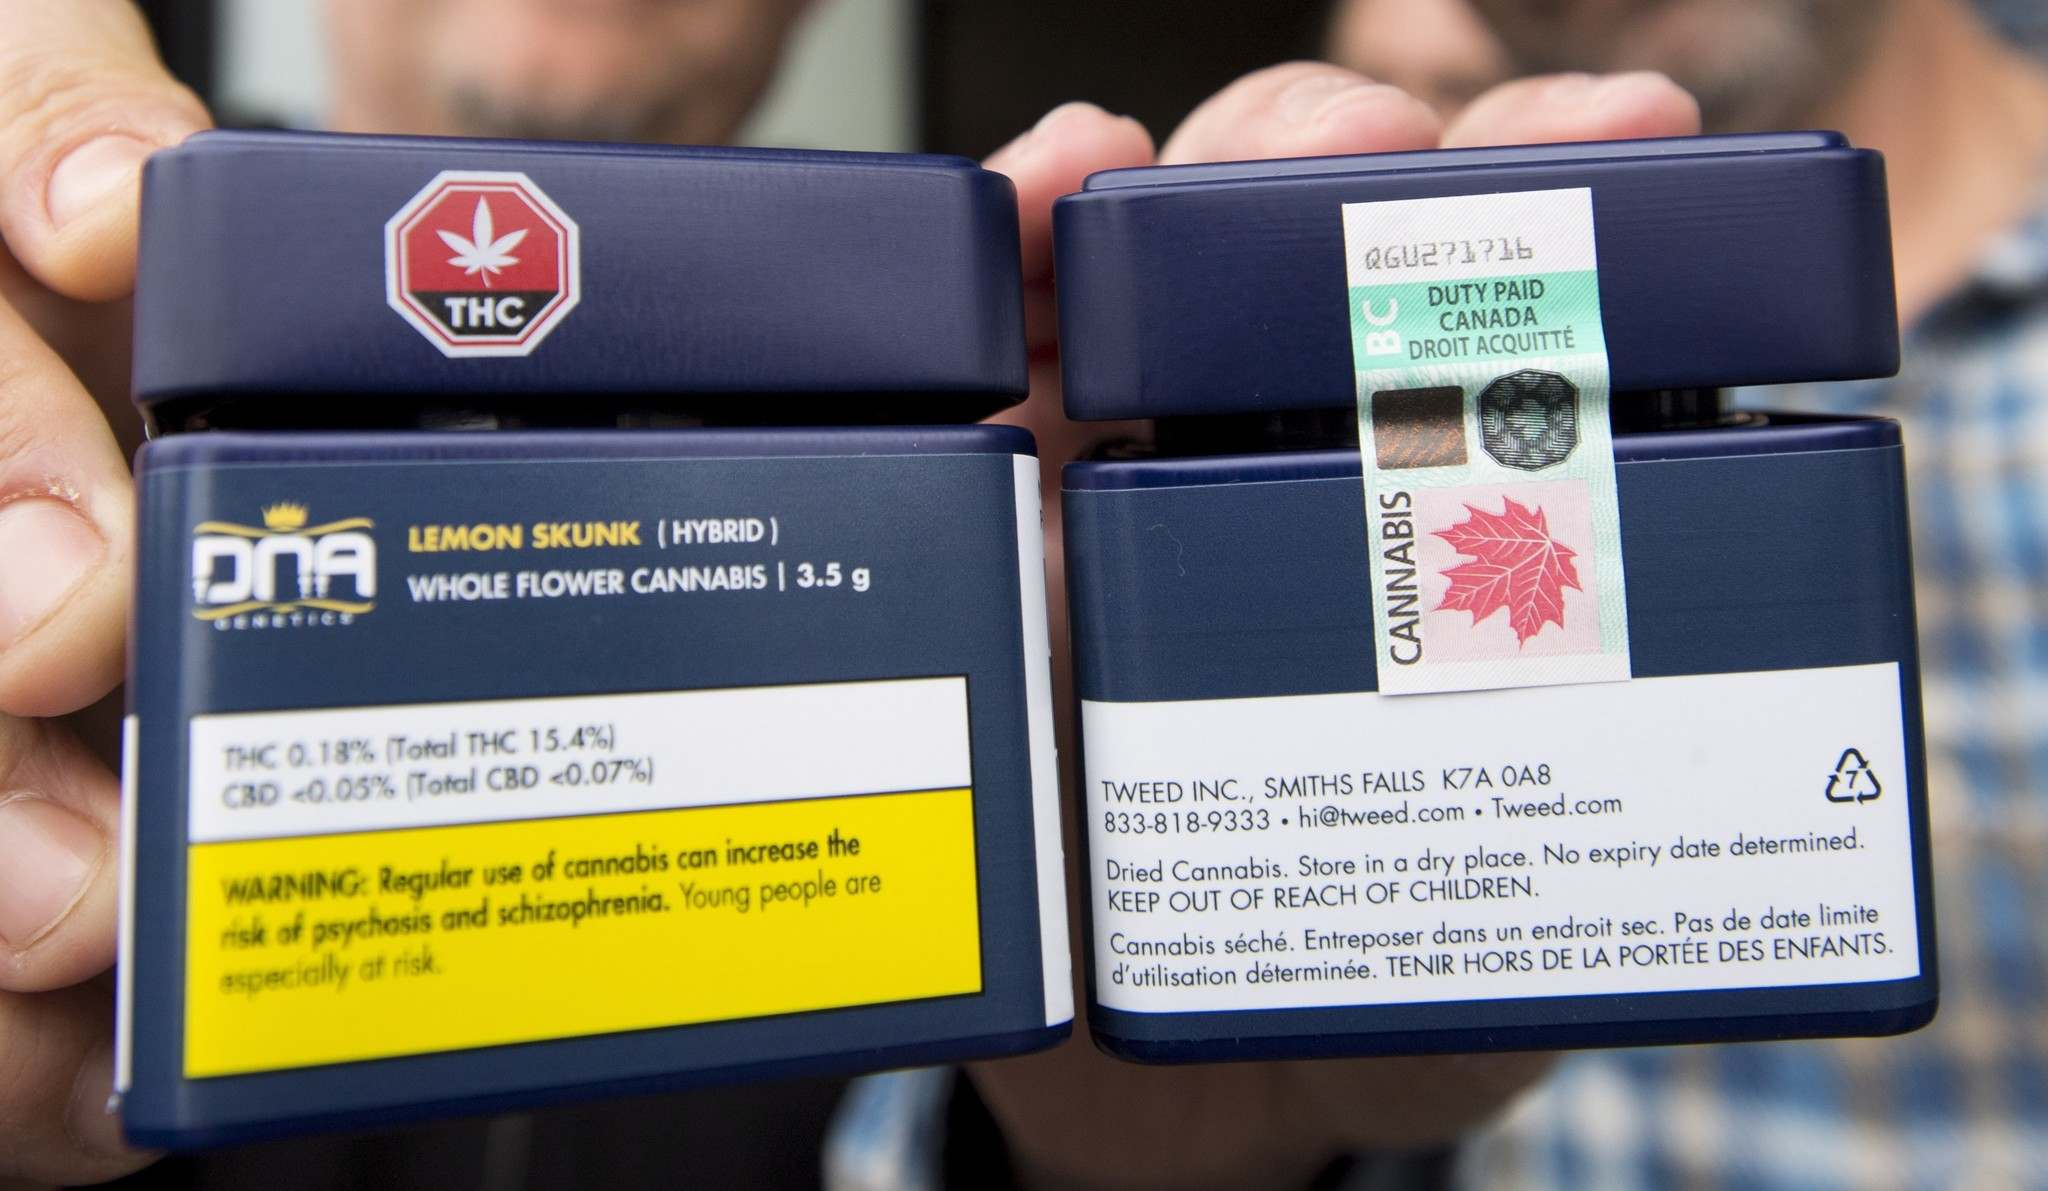 How to read the label on your legal cannabis - The Leaf